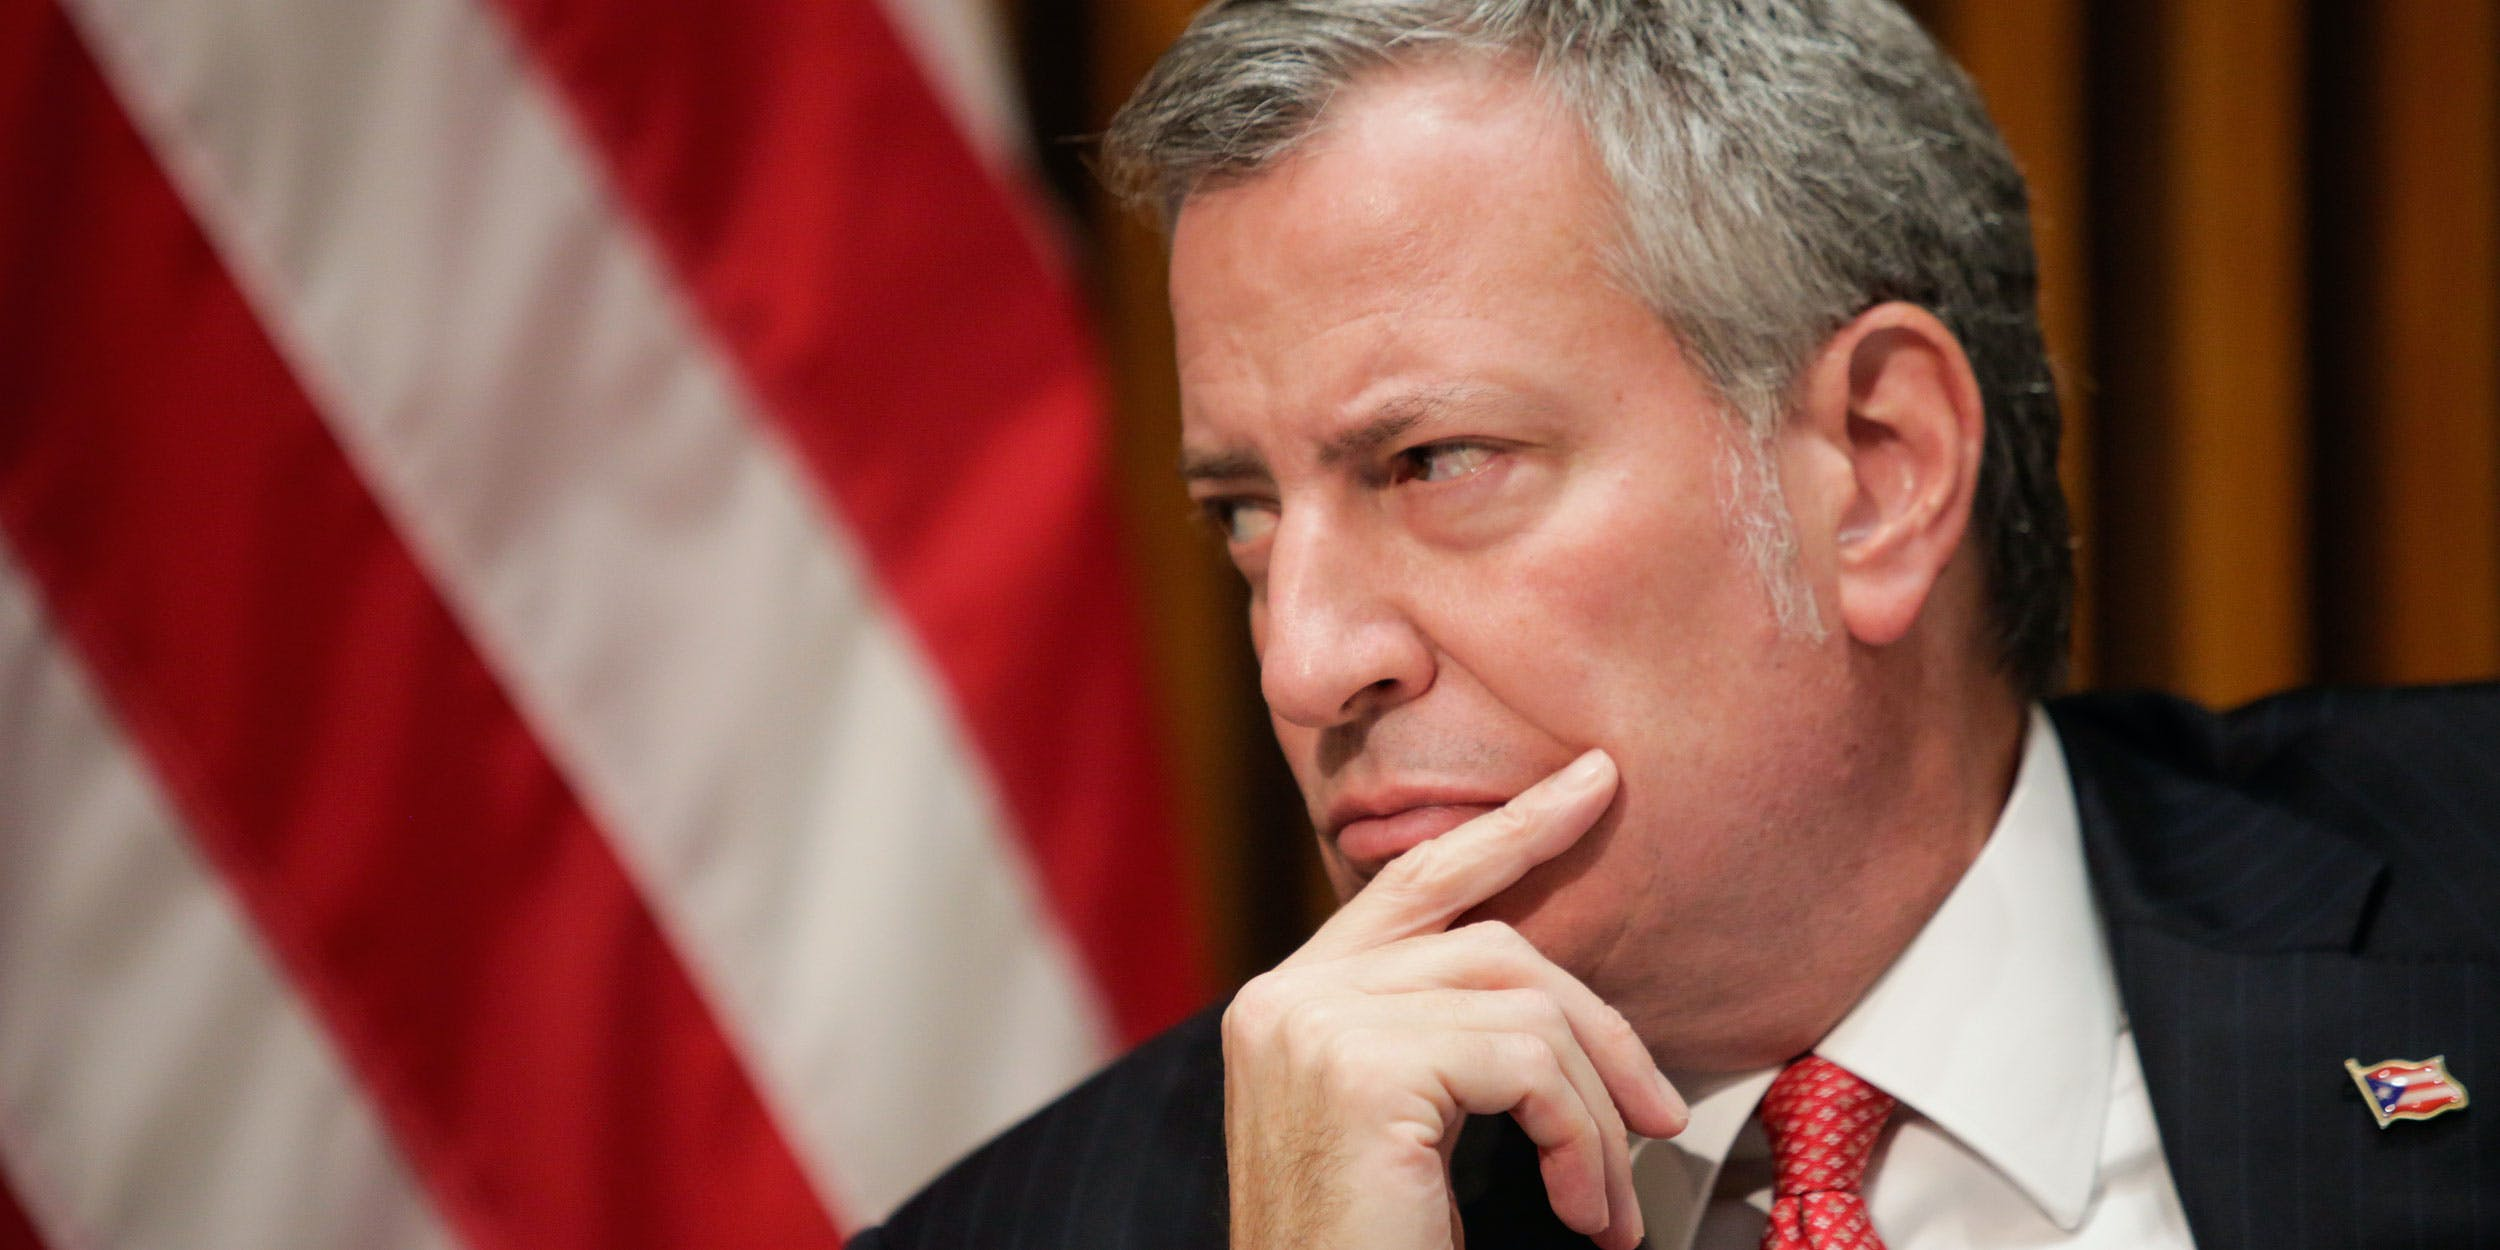 New York City Mayor Bill de Blasio listens to a question